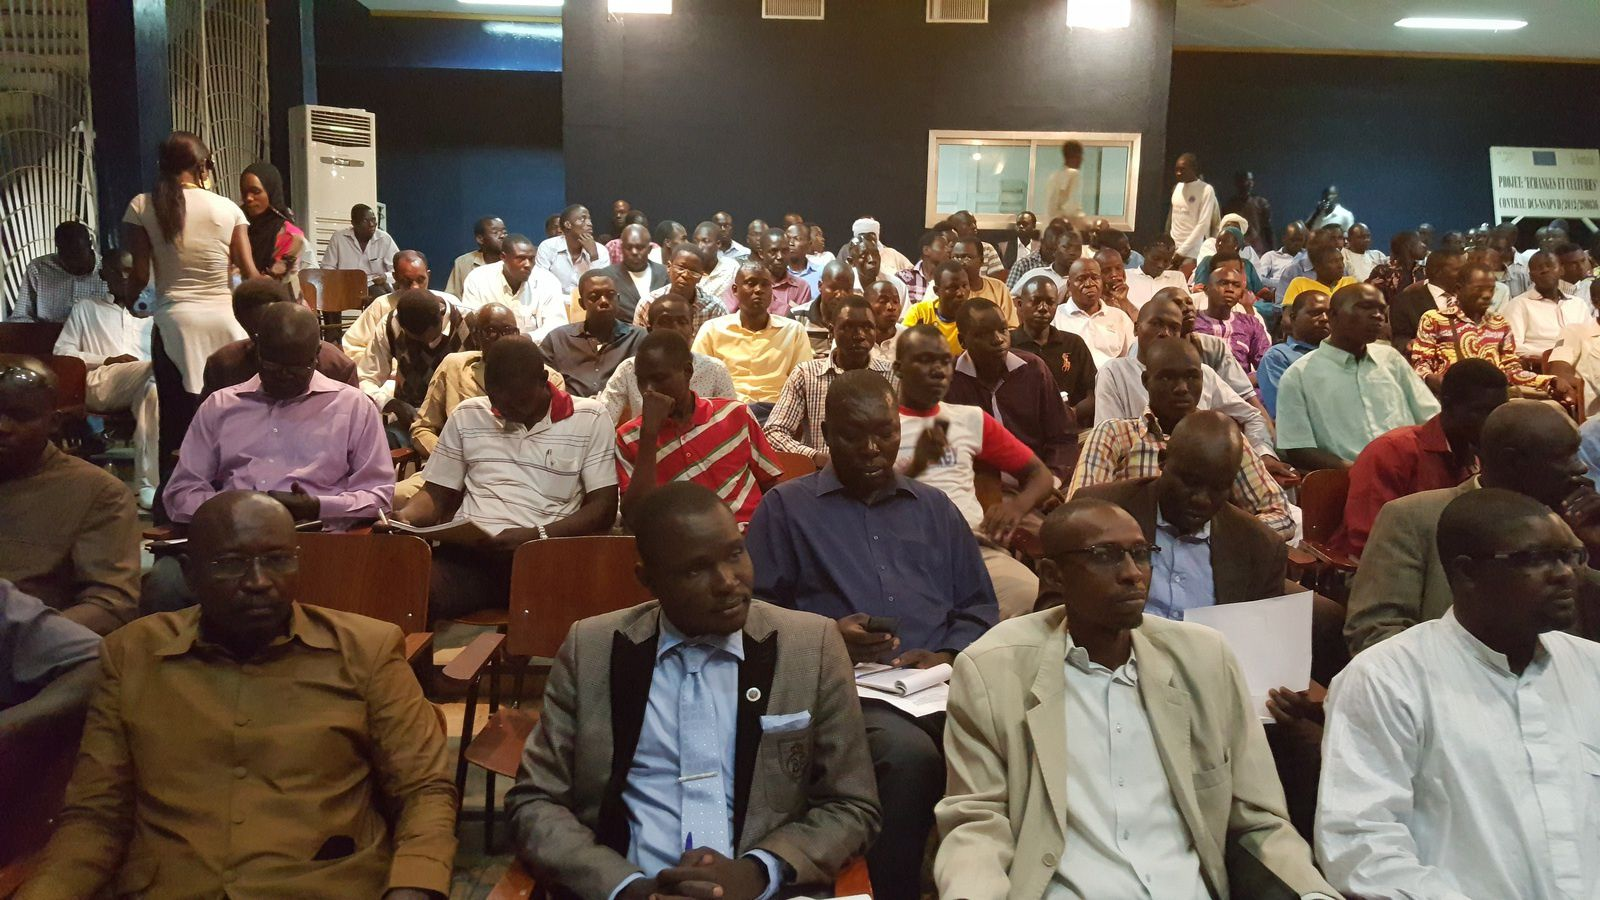 Forum sur l'alternance au Tchad: l'opposition démocratique interpelle la communauté internationale